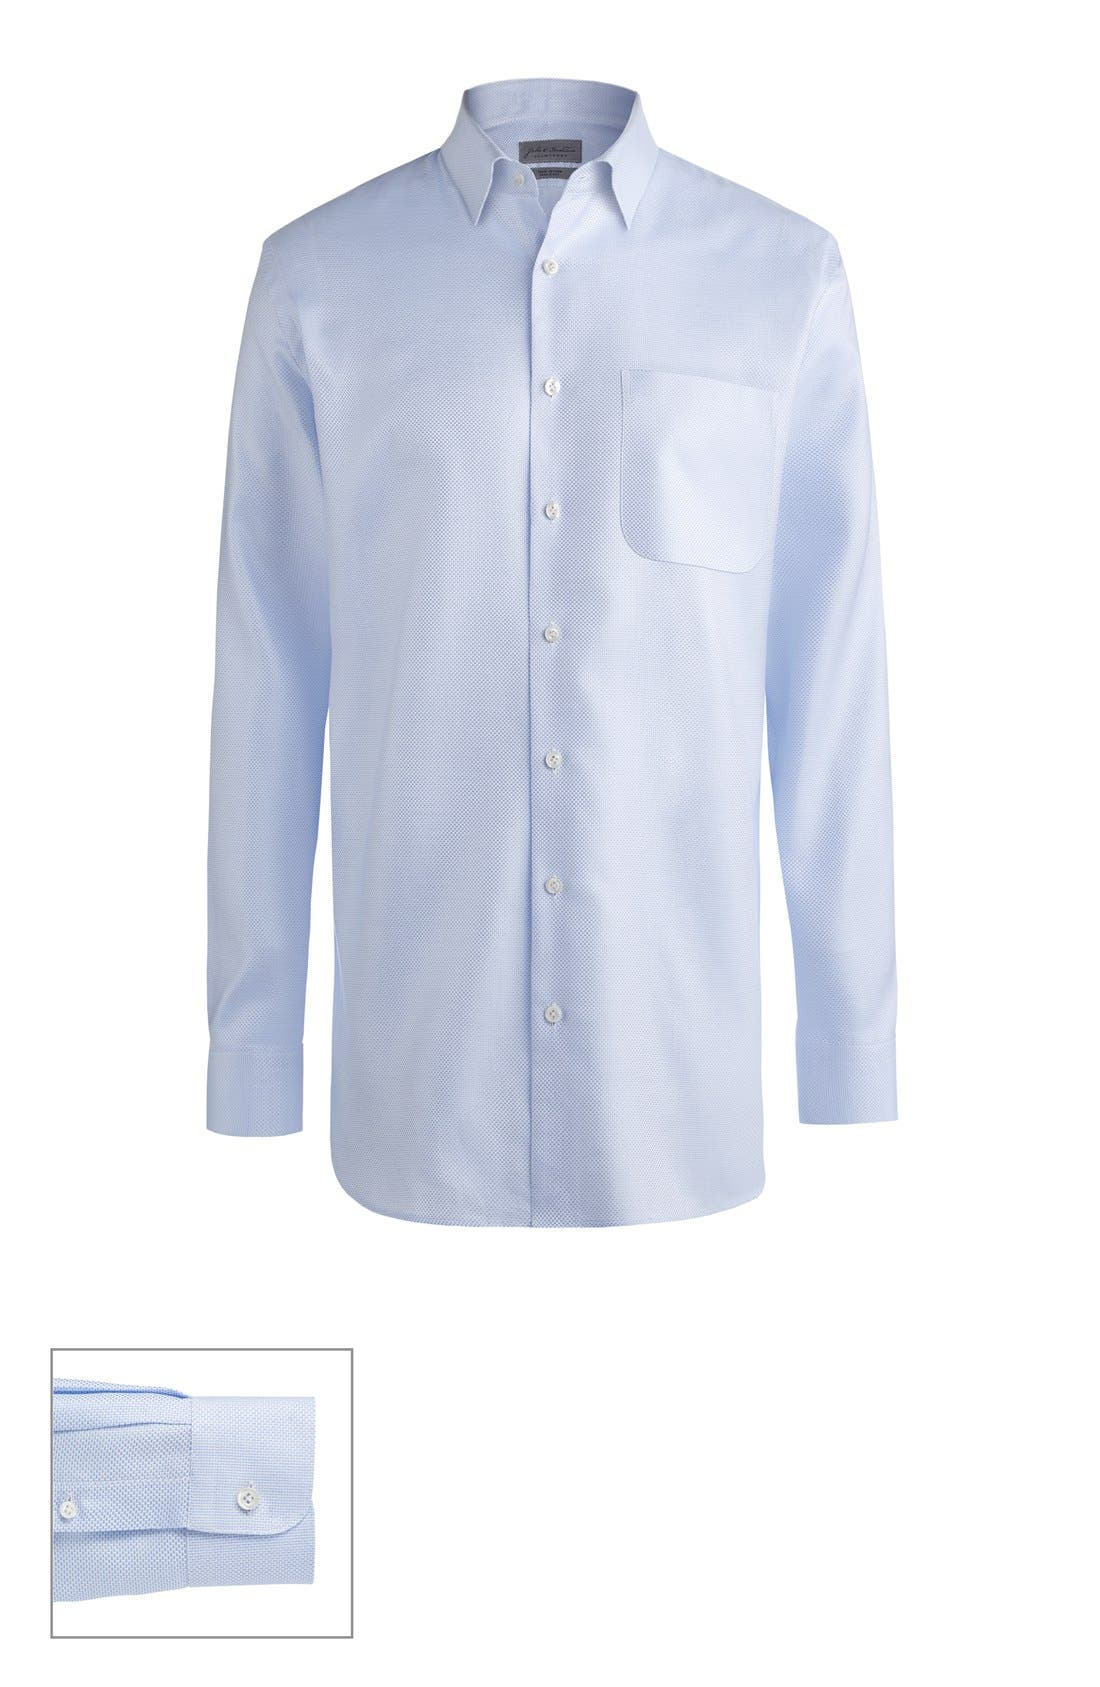 Made to Measure Extra Trim Fit Straight Collar Dobby Dress Shirt,                             Main thumbnail 1, color,                             Blue Micro Basket Weave